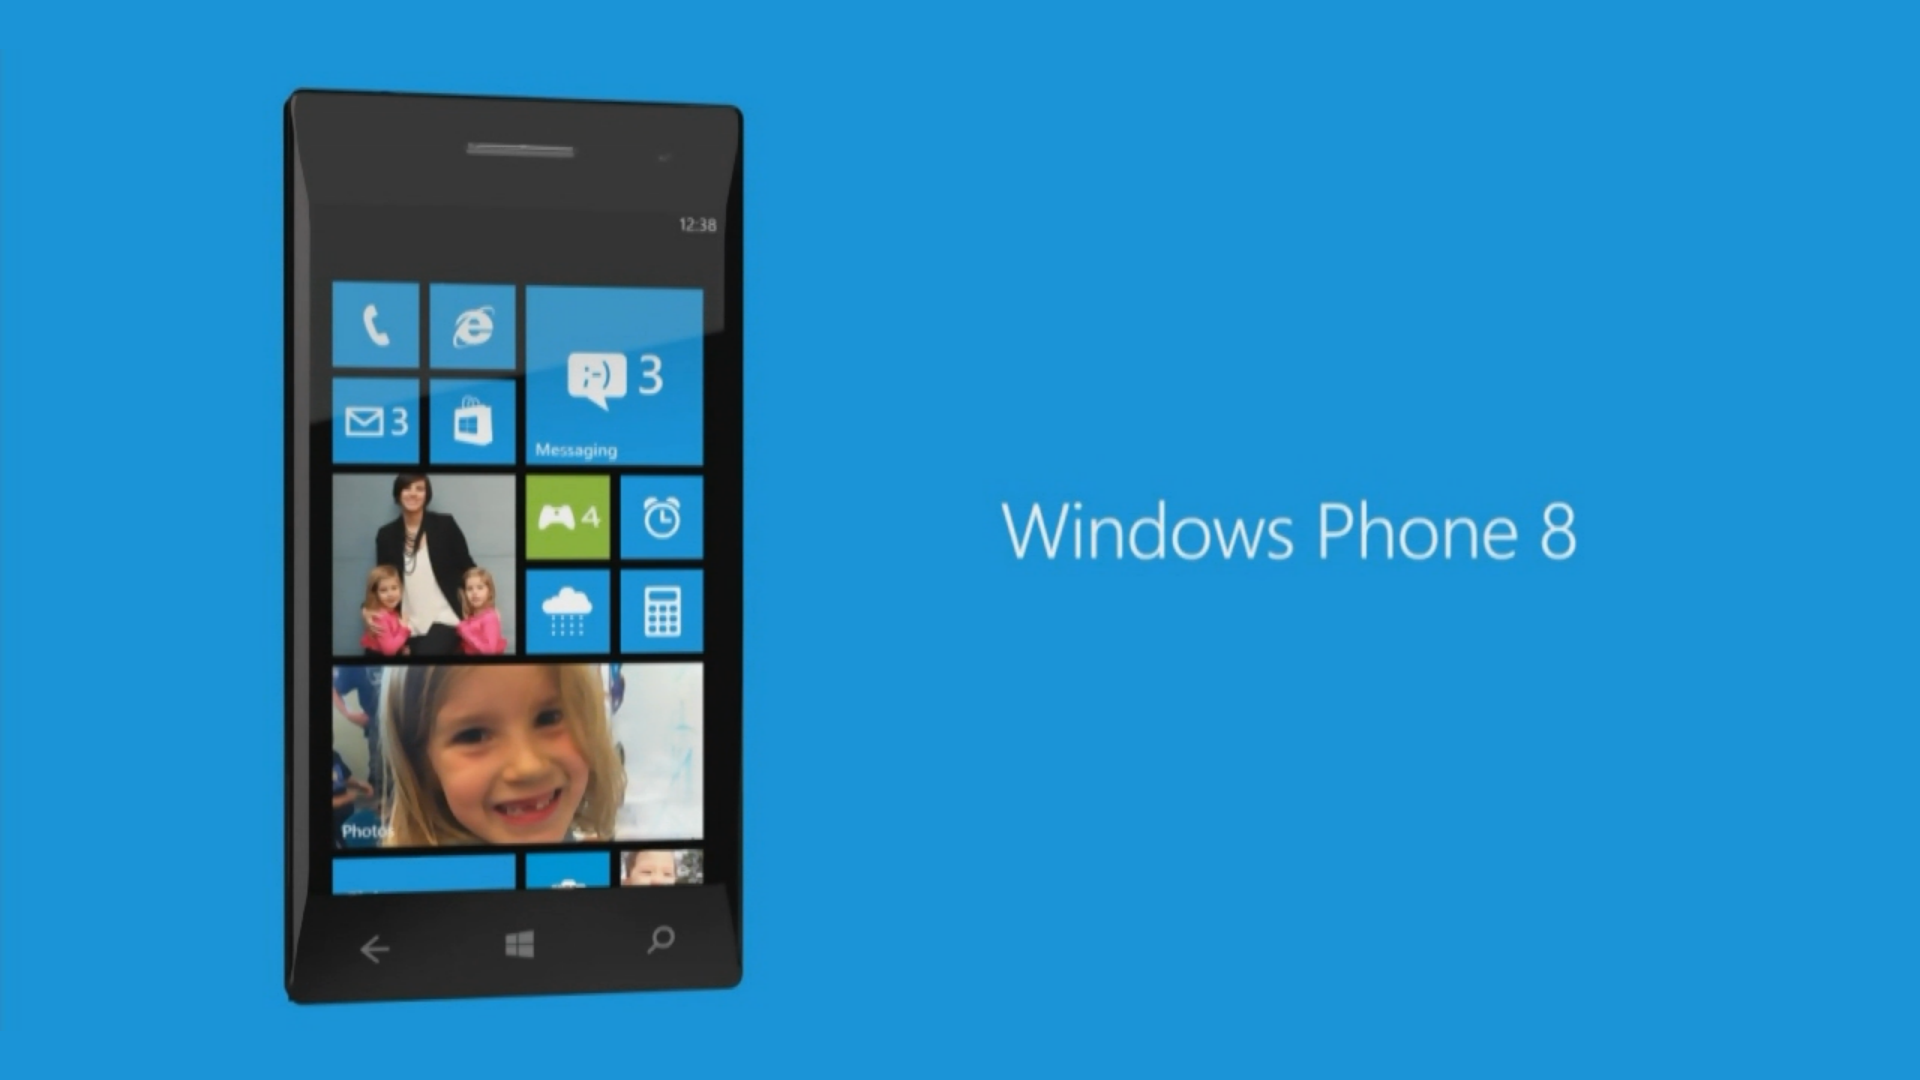 WP 8 Microsoft Windows 8 Phone